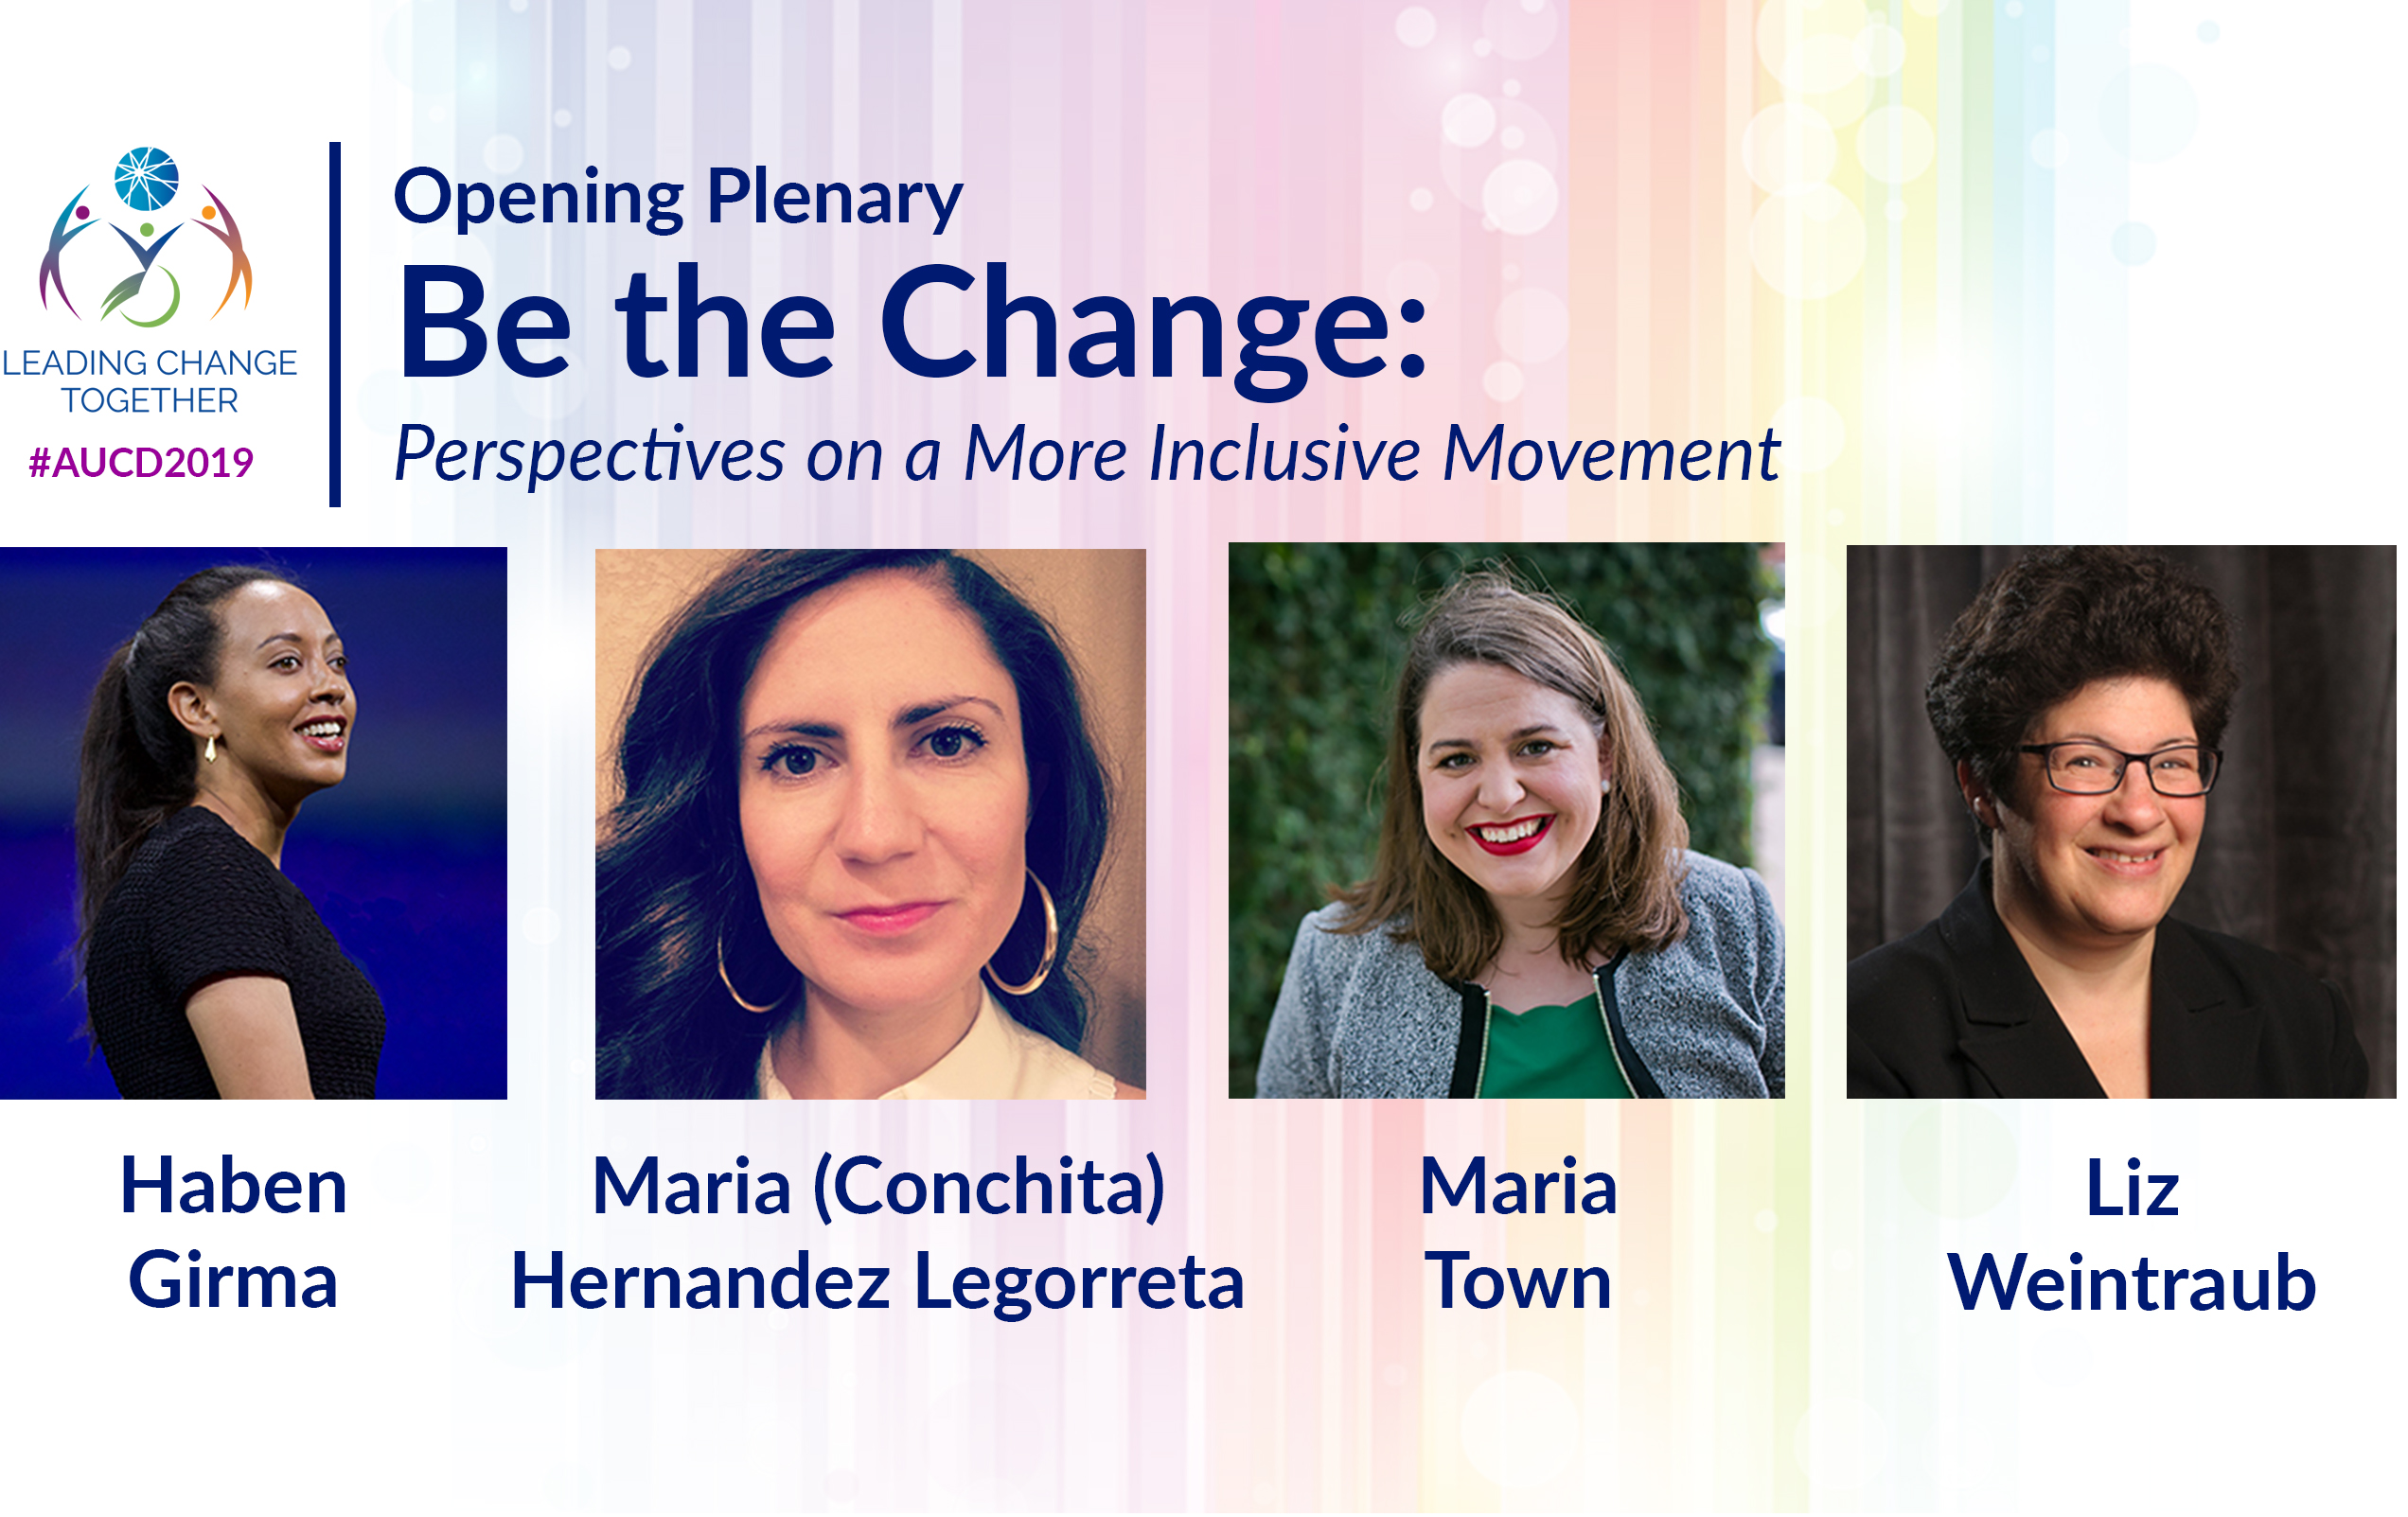 Image of the four plenaries speakers. Text: Opening Plenary: Be the Change: Perspectives on a More Inclusive Movement